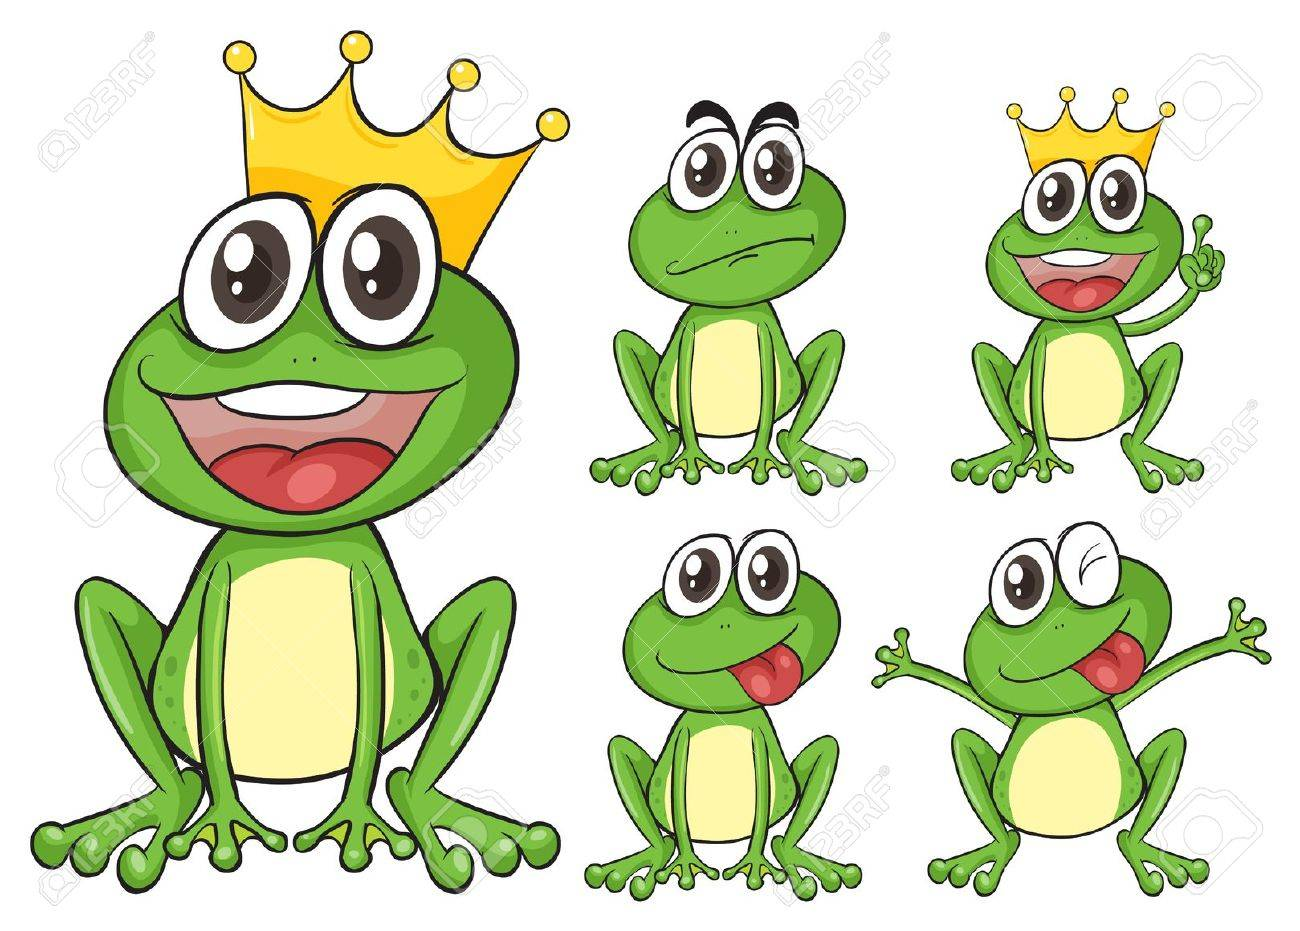 Illustration of green frogs on a white background Stock Vector - 17161322